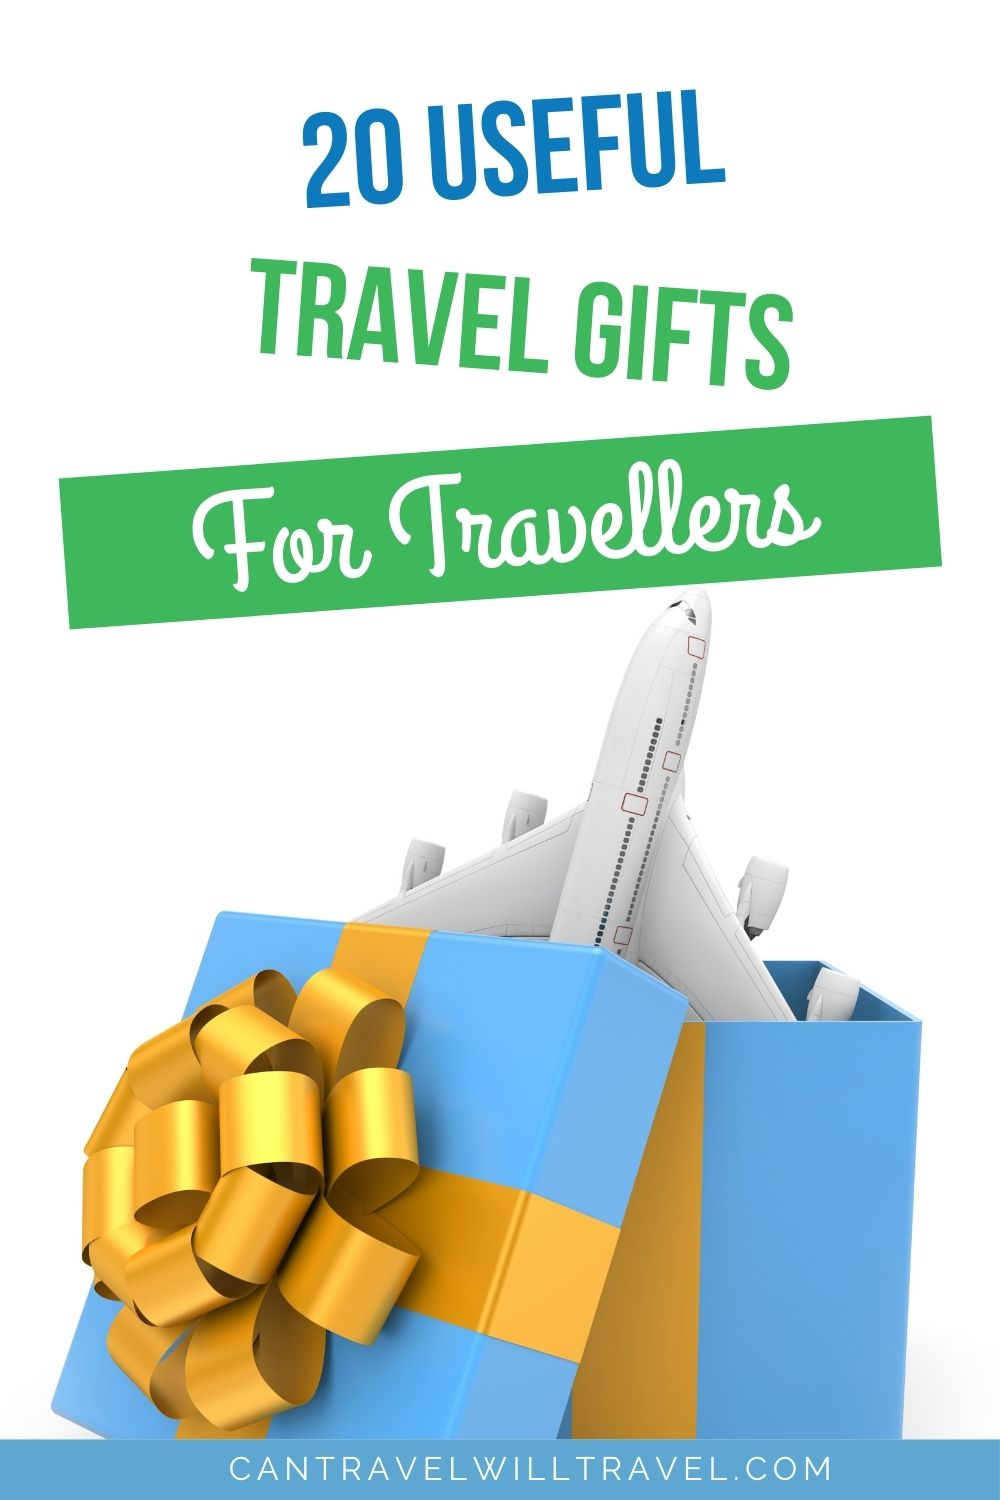 20 Useful Travel Gifts for Travellers